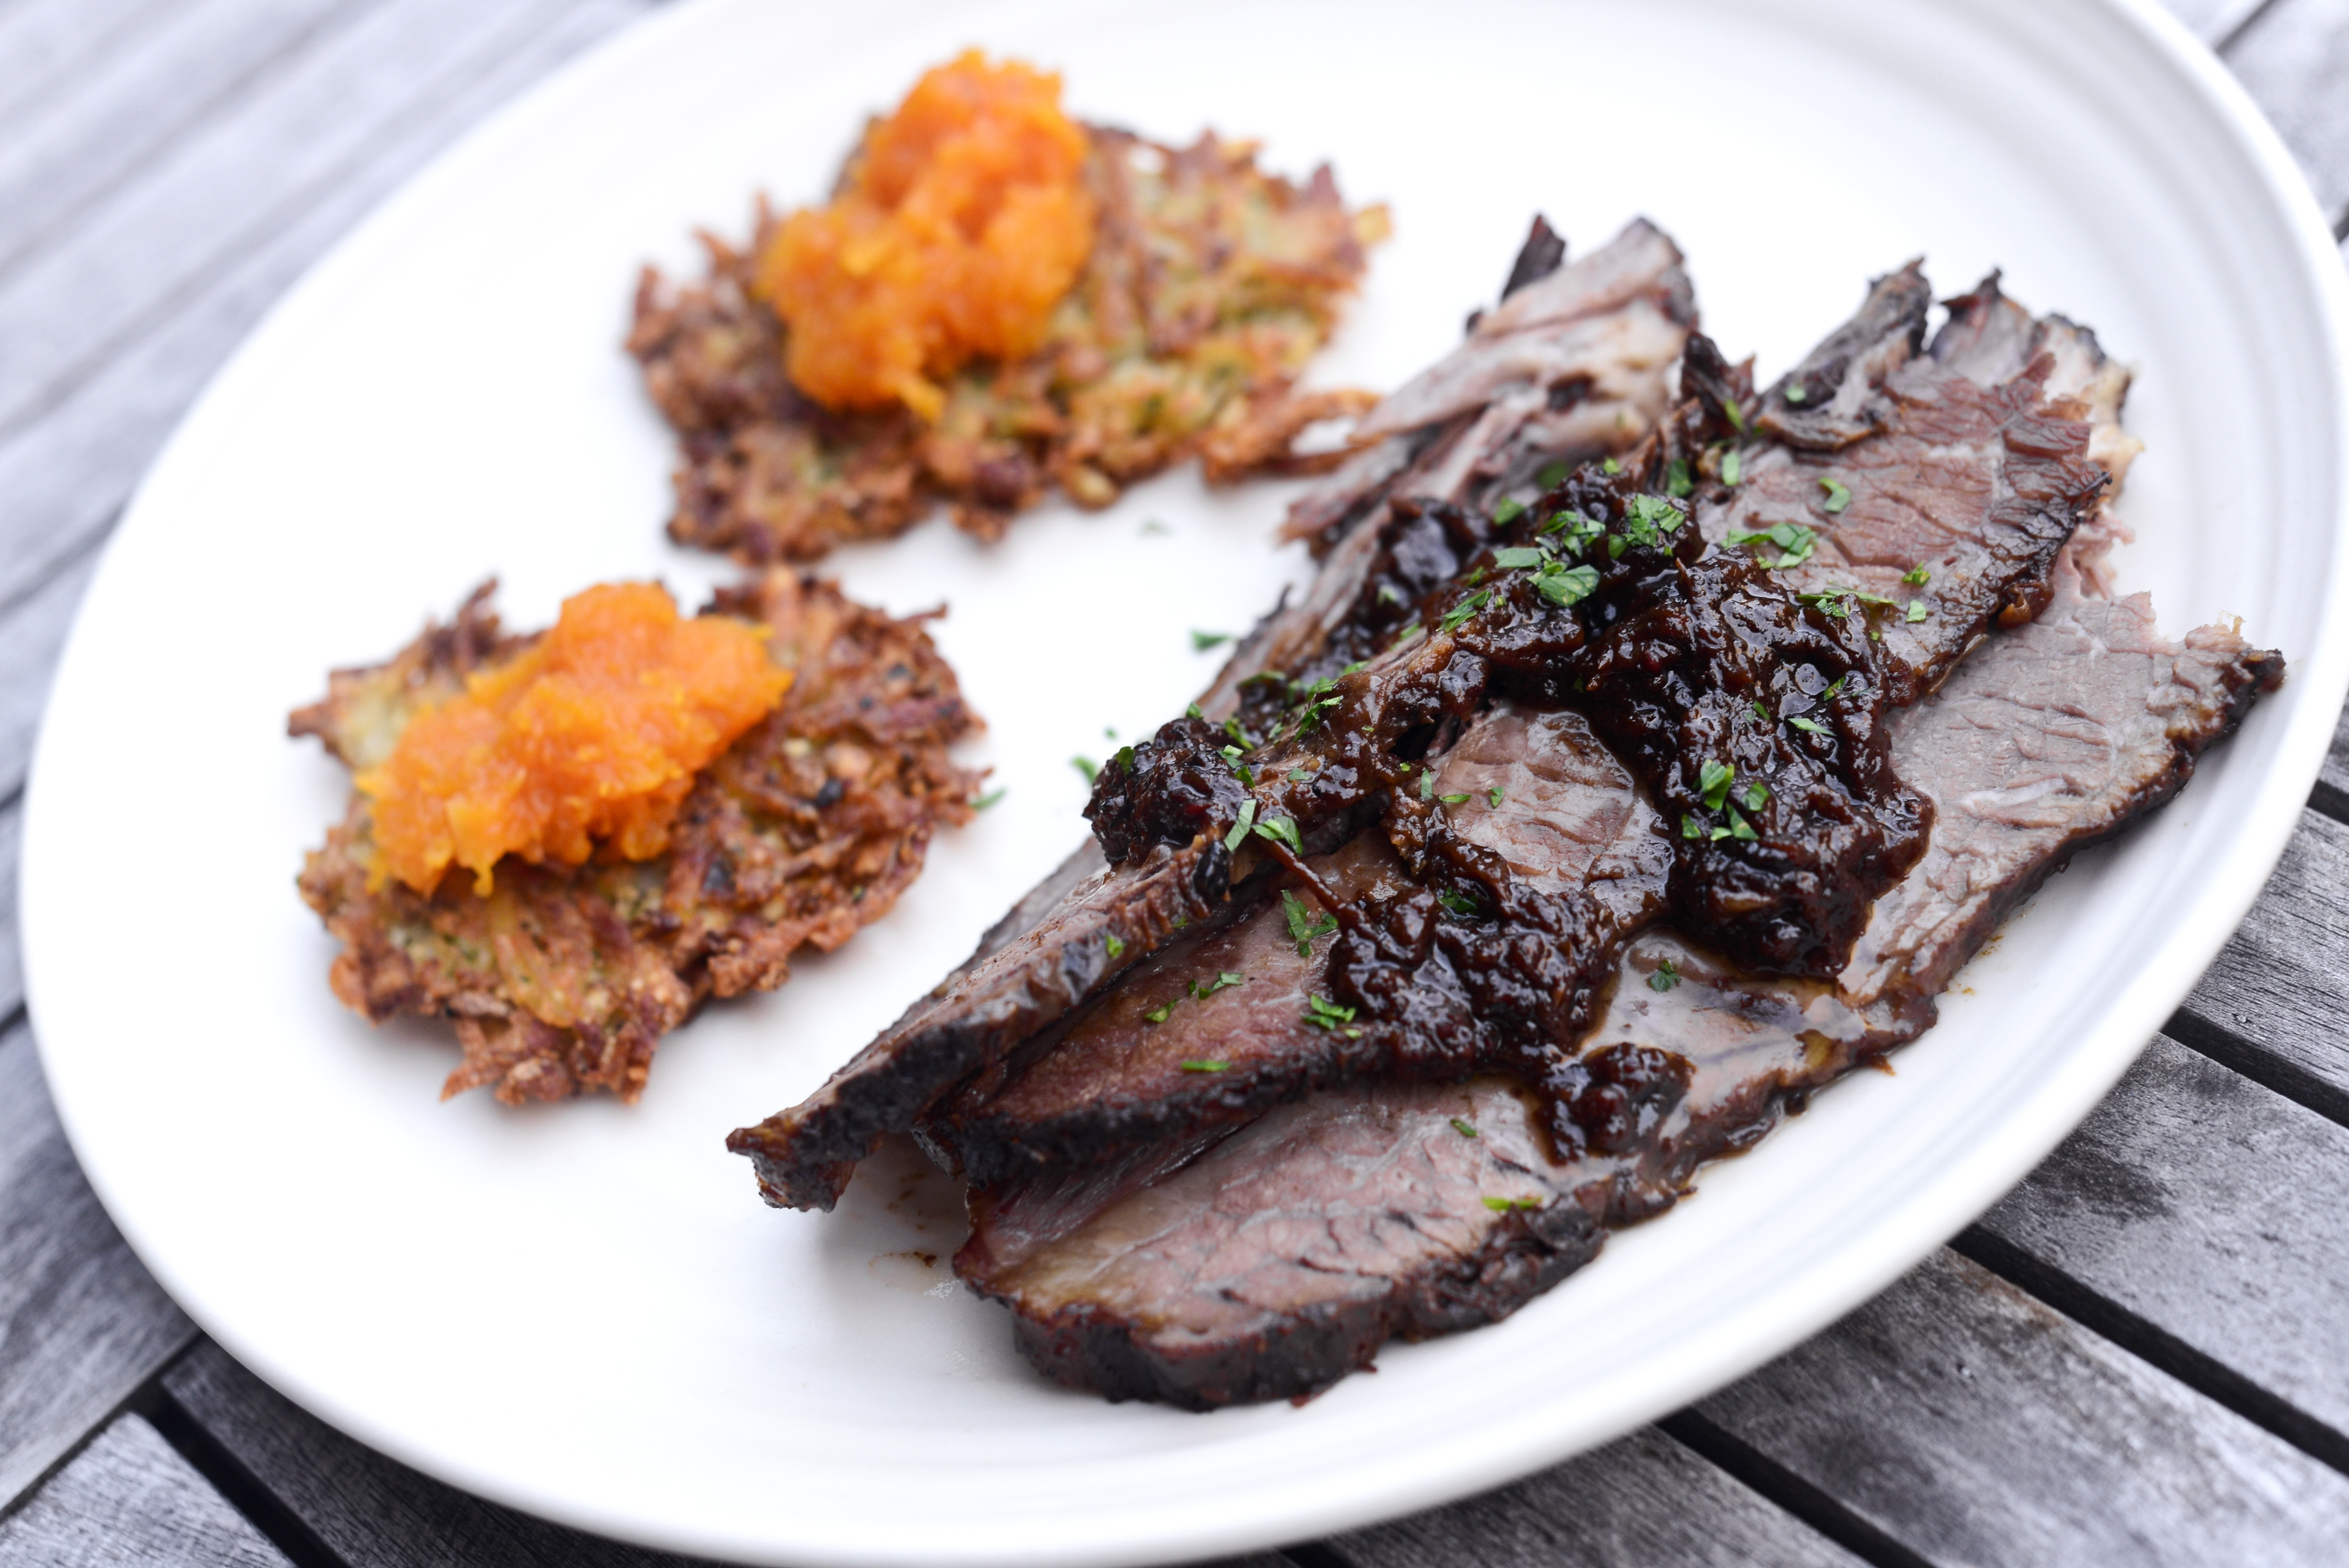 Latkes, essential to a Hanukkah meal, served with pumpkin preserves and brisket.